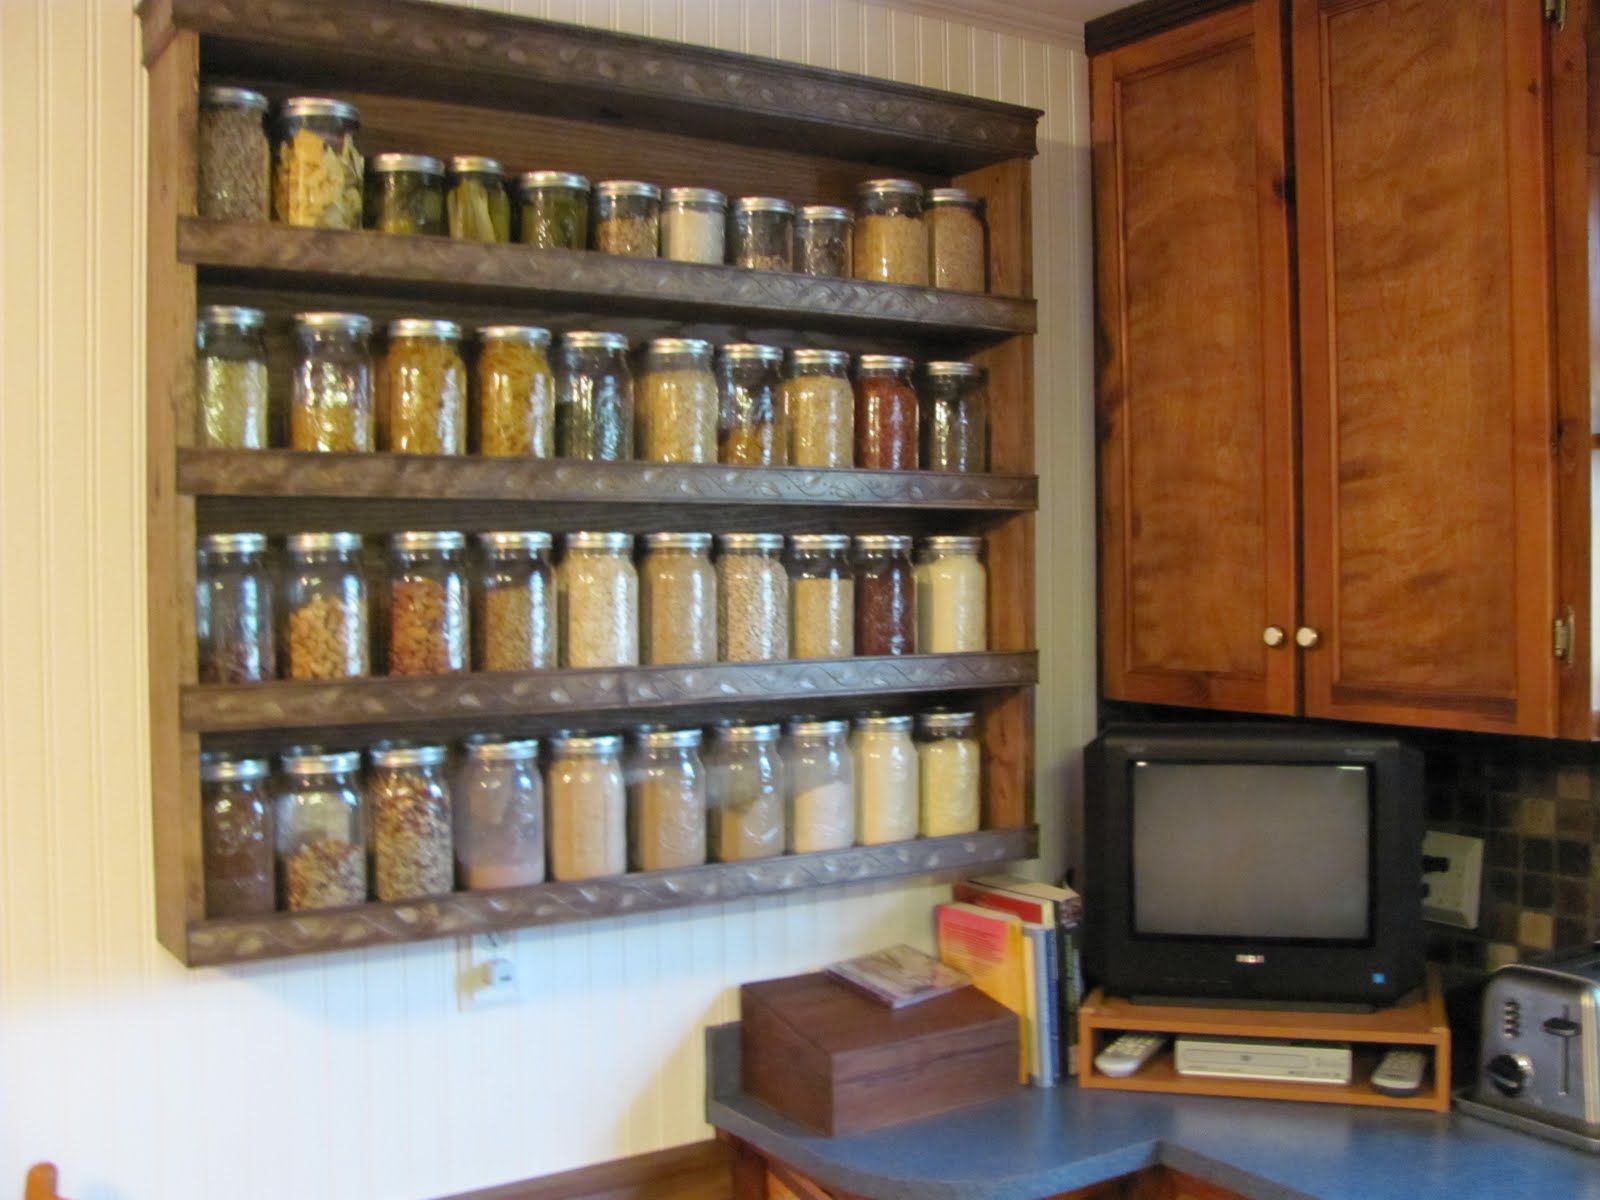 Kitchen Storage Shelves My Canning Jar Storage Shelf Food Storage Pinterest Shelves